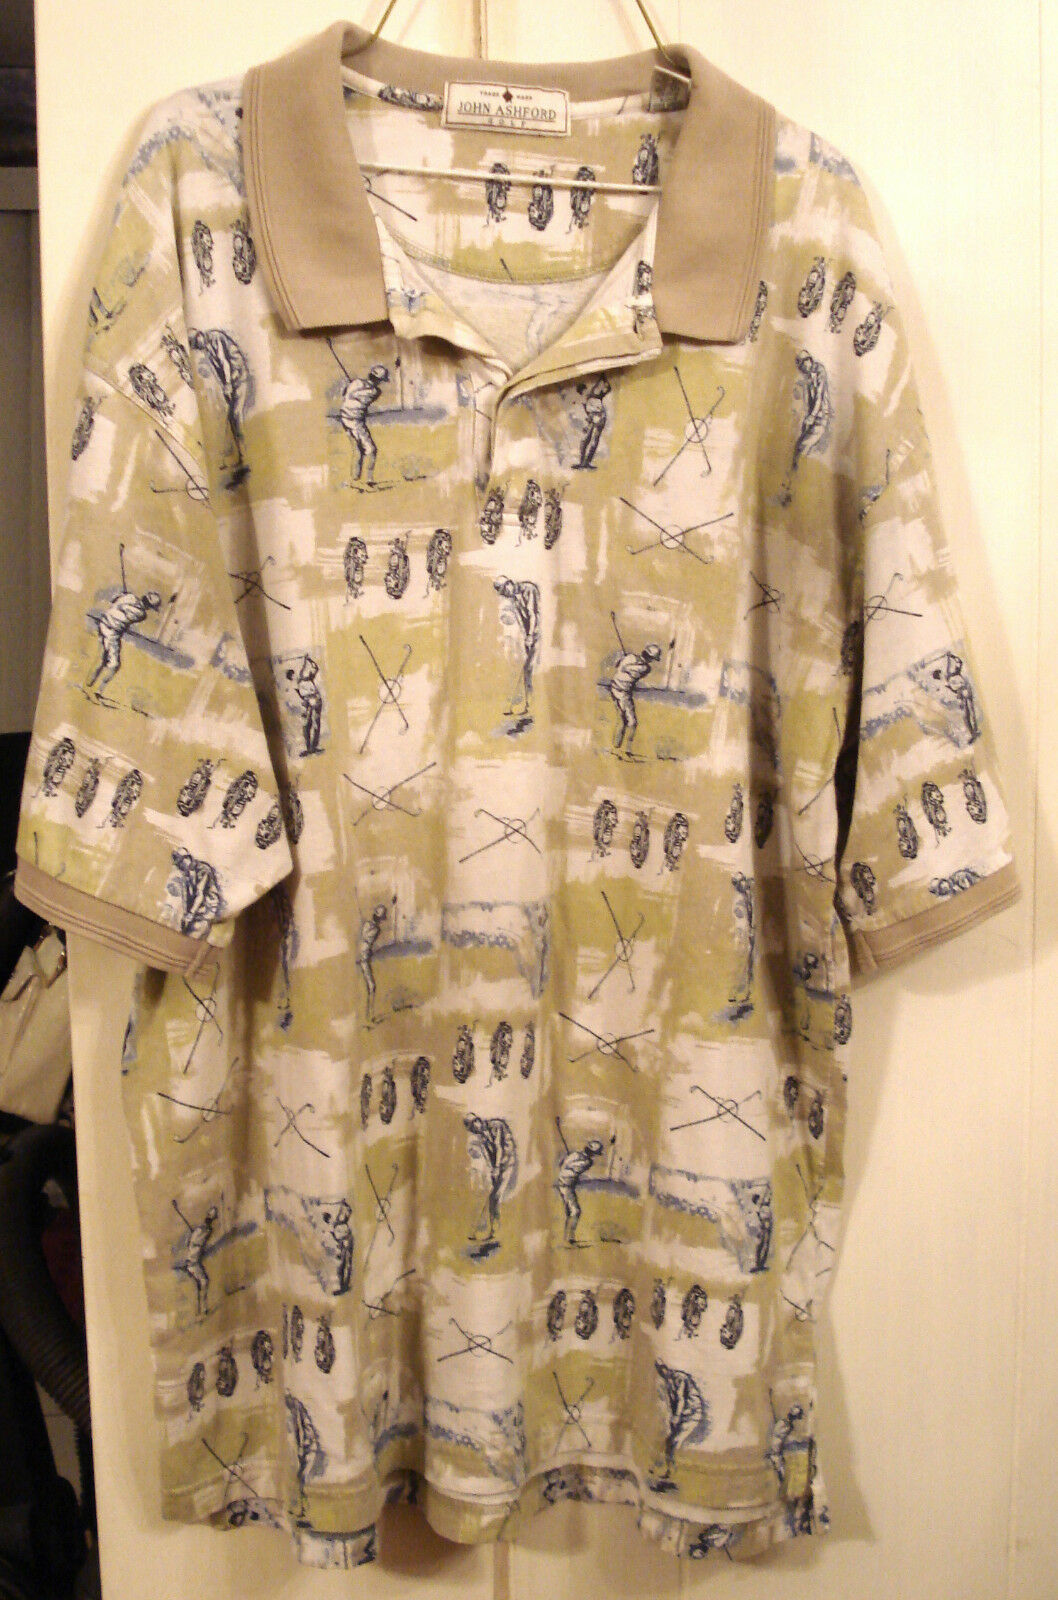 Primary image for John Ashford Polo Rugby Shirt XL Beige Blue Print 100% Cotton Casual Golf Style